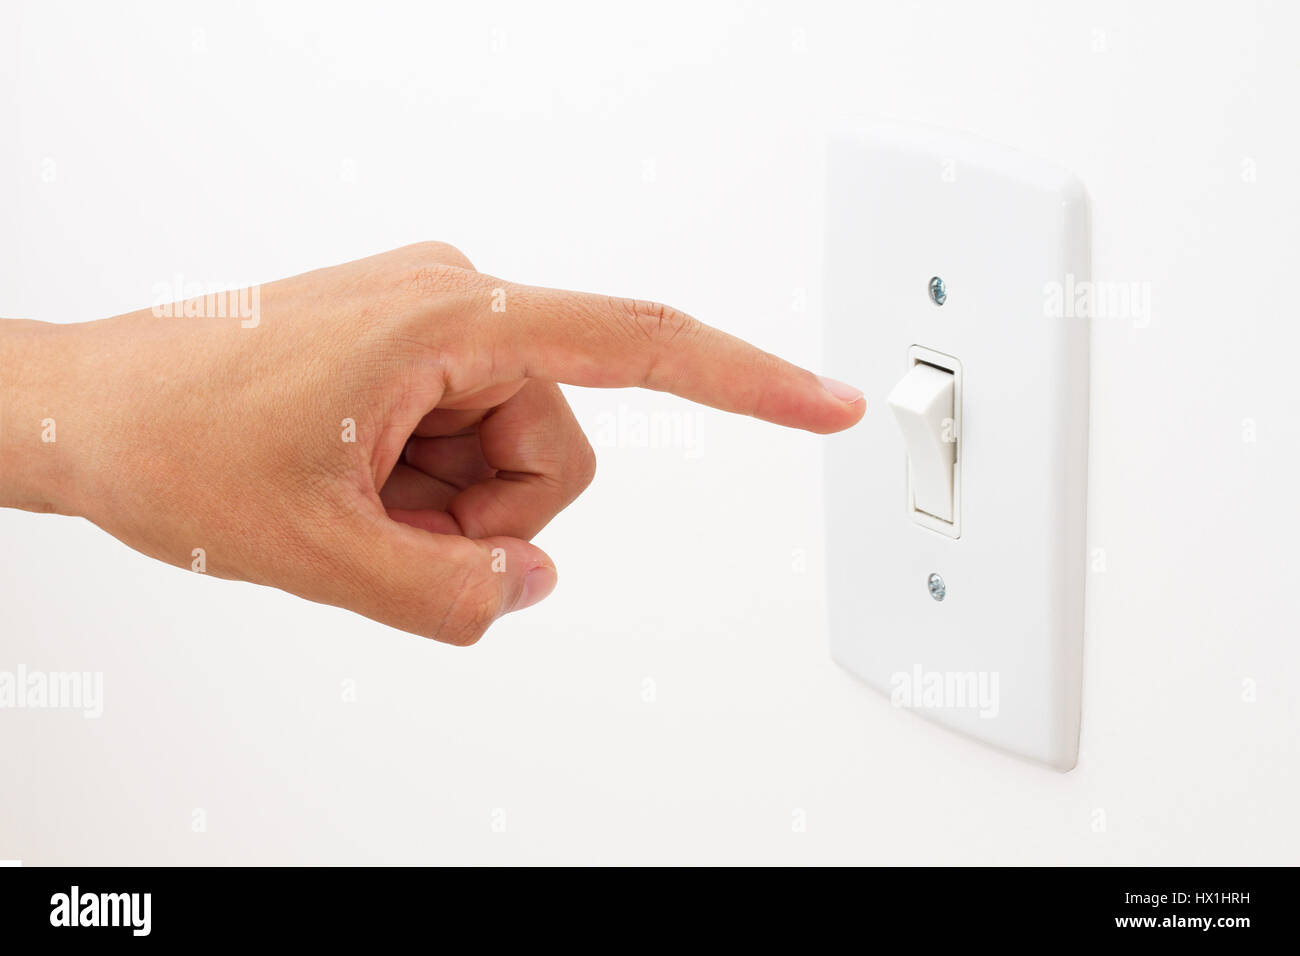 Hand turning light power switch on or off. - Stock Image